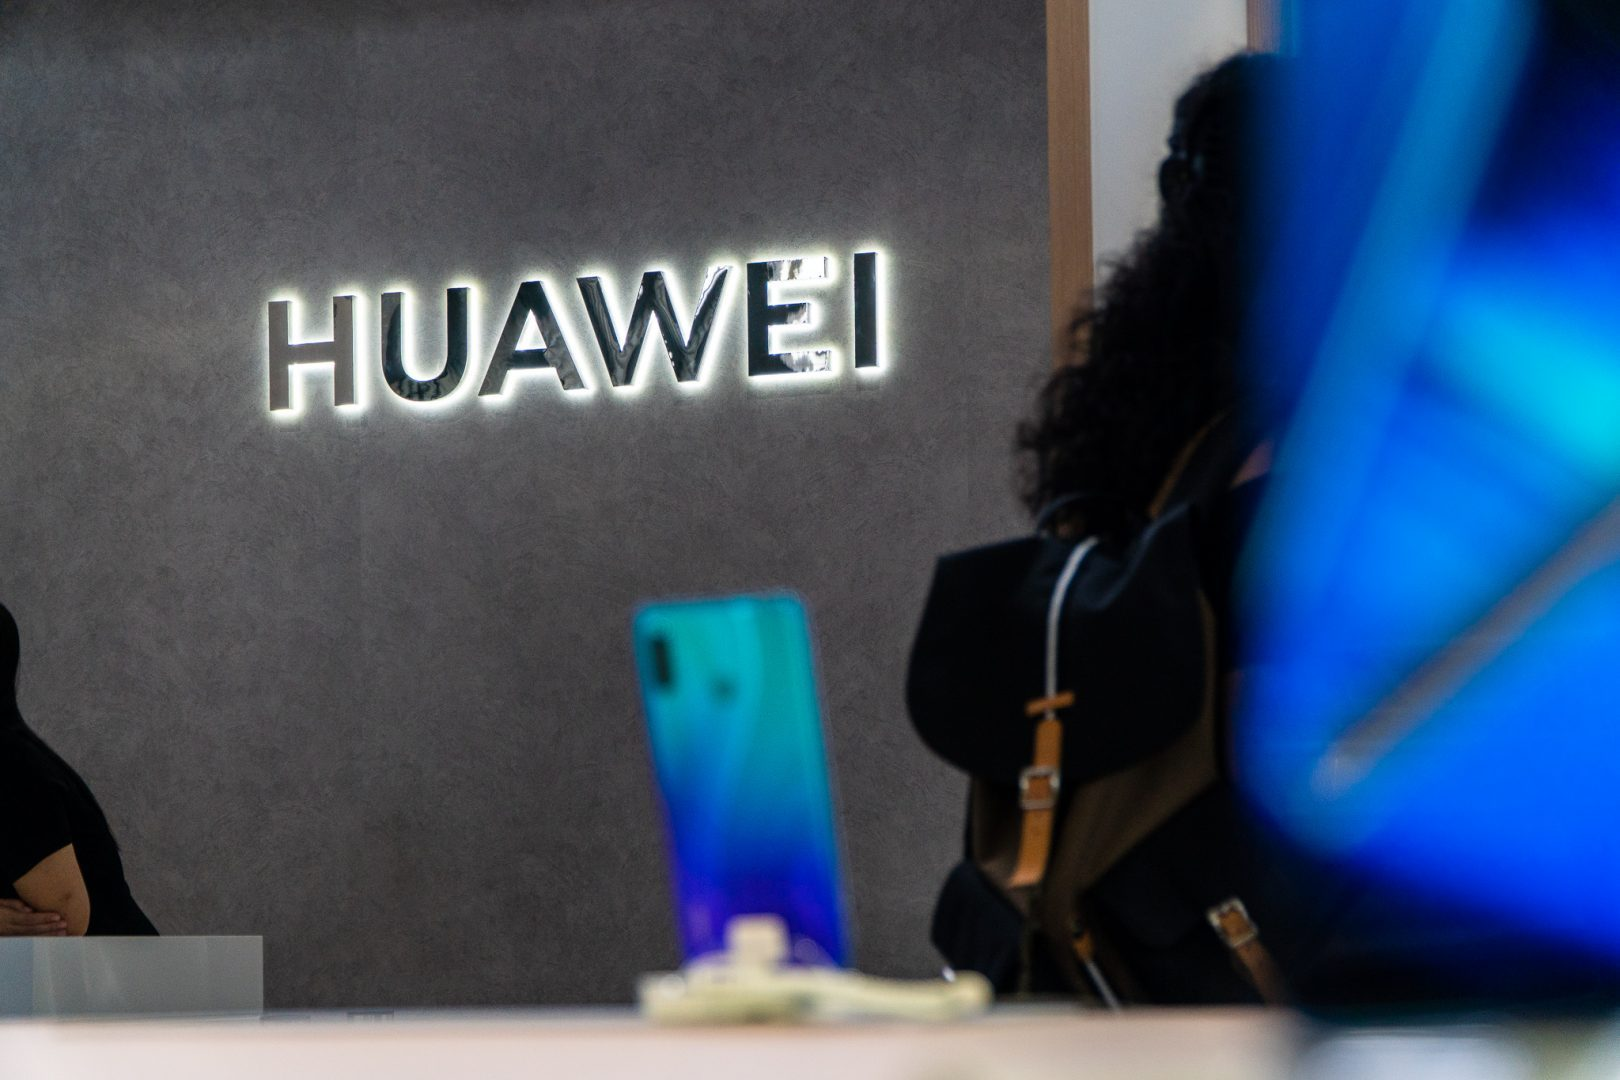 Huawei Launches Its New 5G Flagship Phone Lacking Google-Licensed Apps